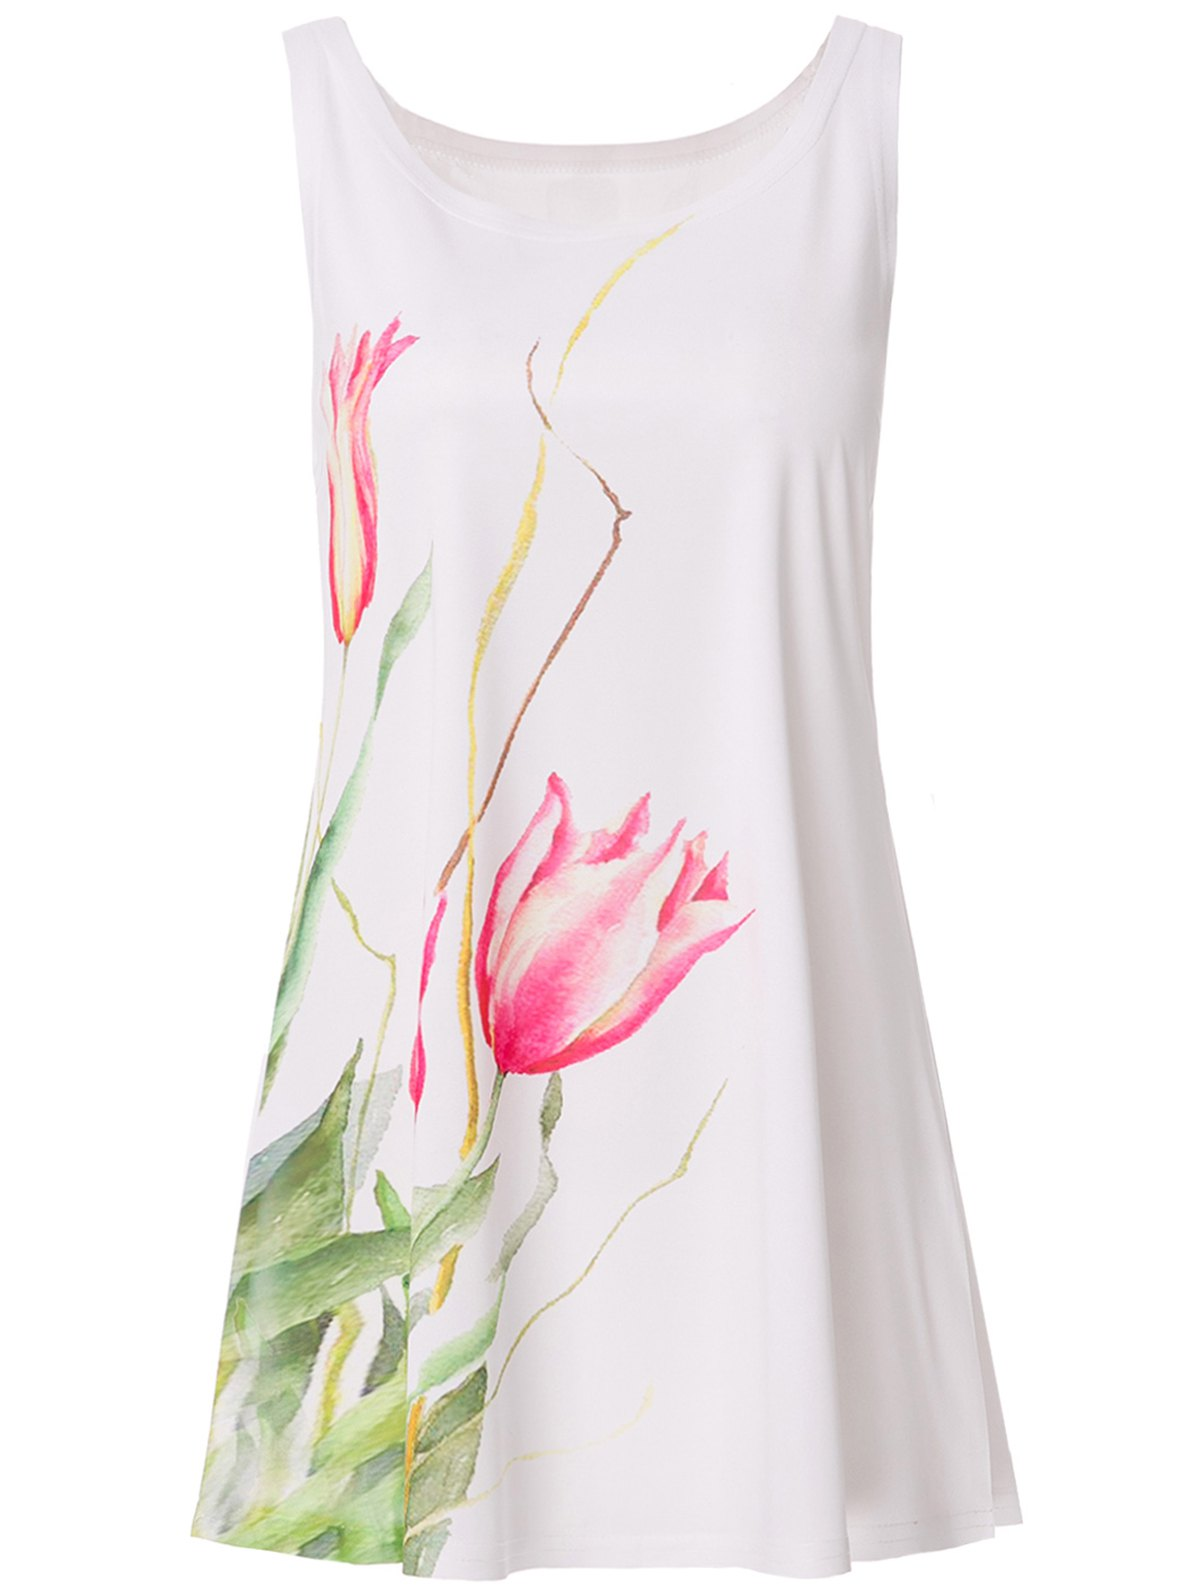 Refreshing Scoop Neck Tulip Print Tank Top For Women - WHITE ONE SIZE(FIT SIZE XS TO M)